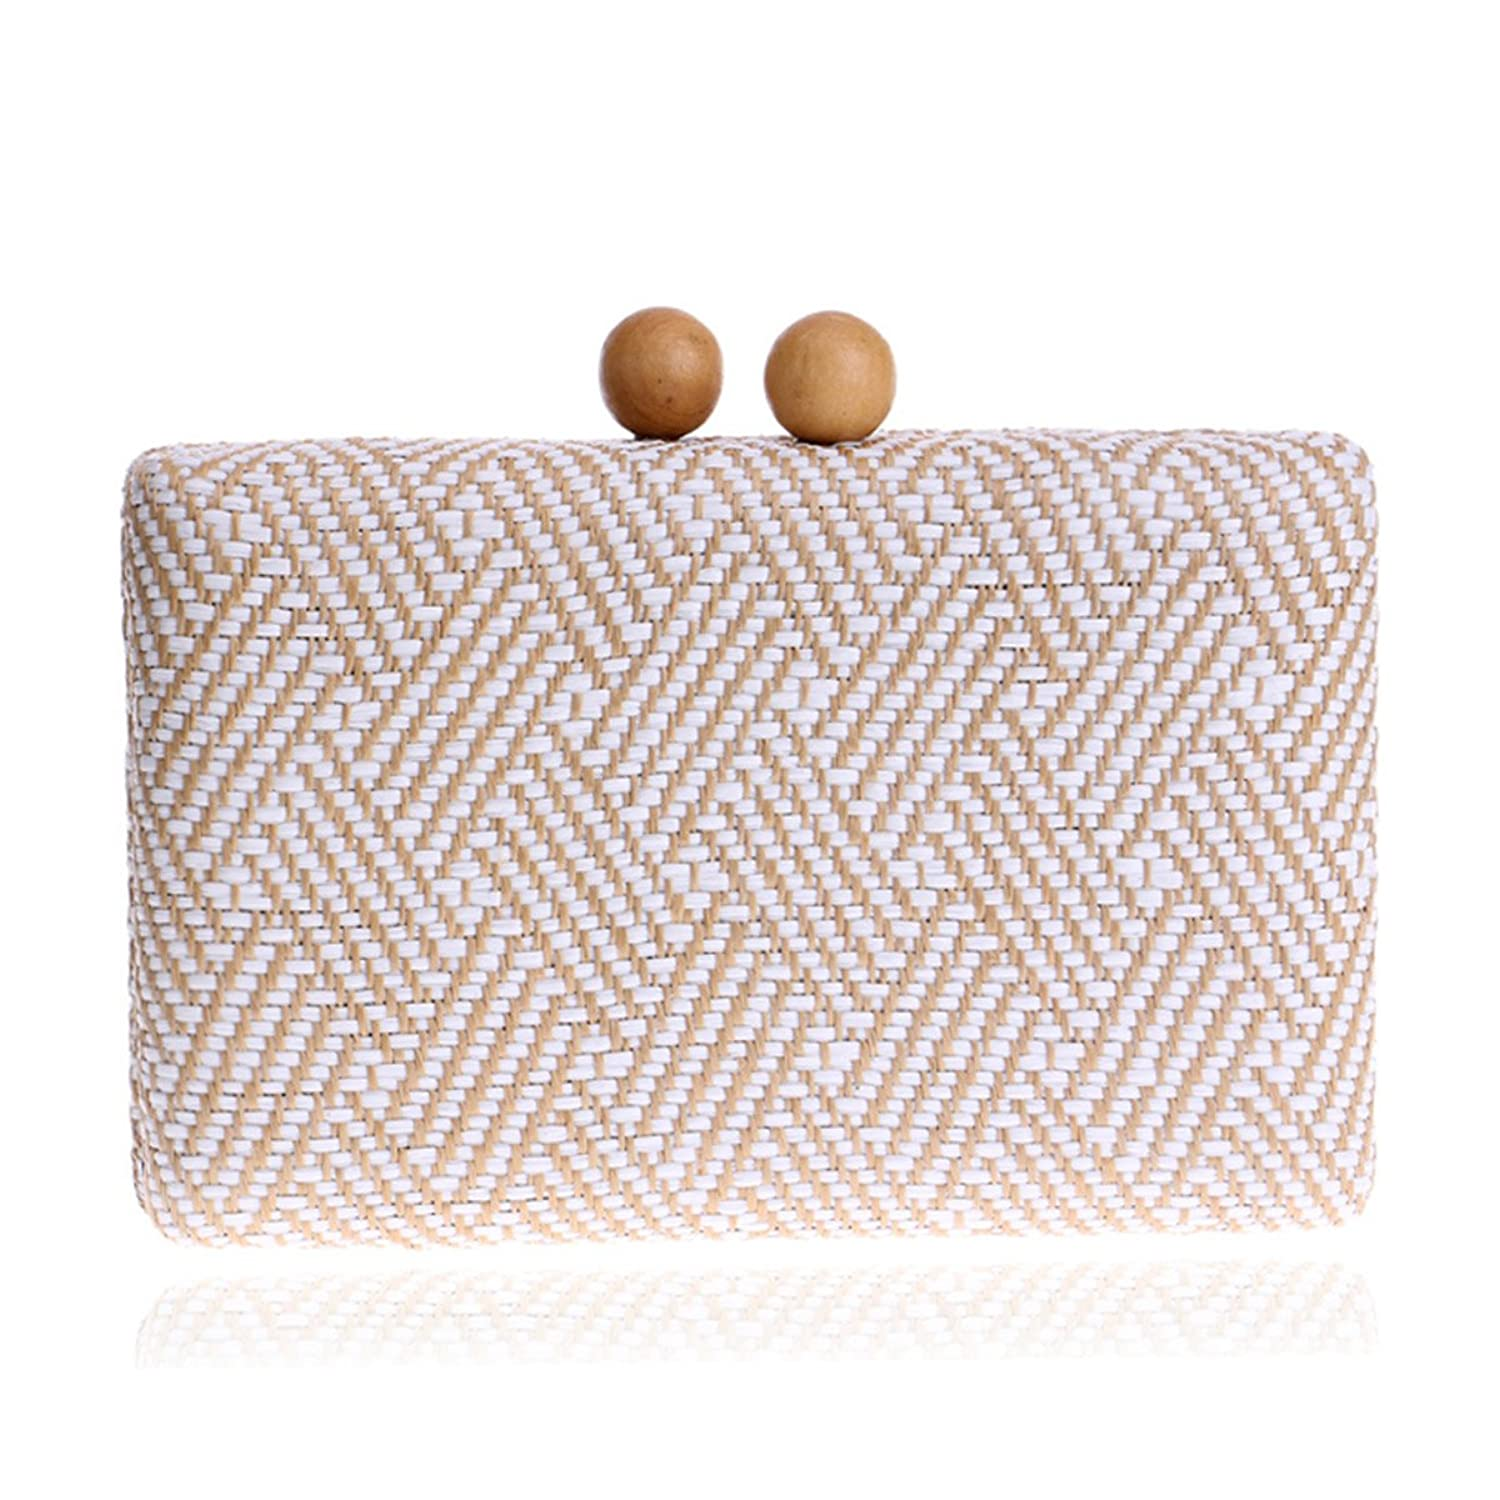 GTIME Women Retro Package Plaid Stripes Clutch Bags Luxury Evening Bags